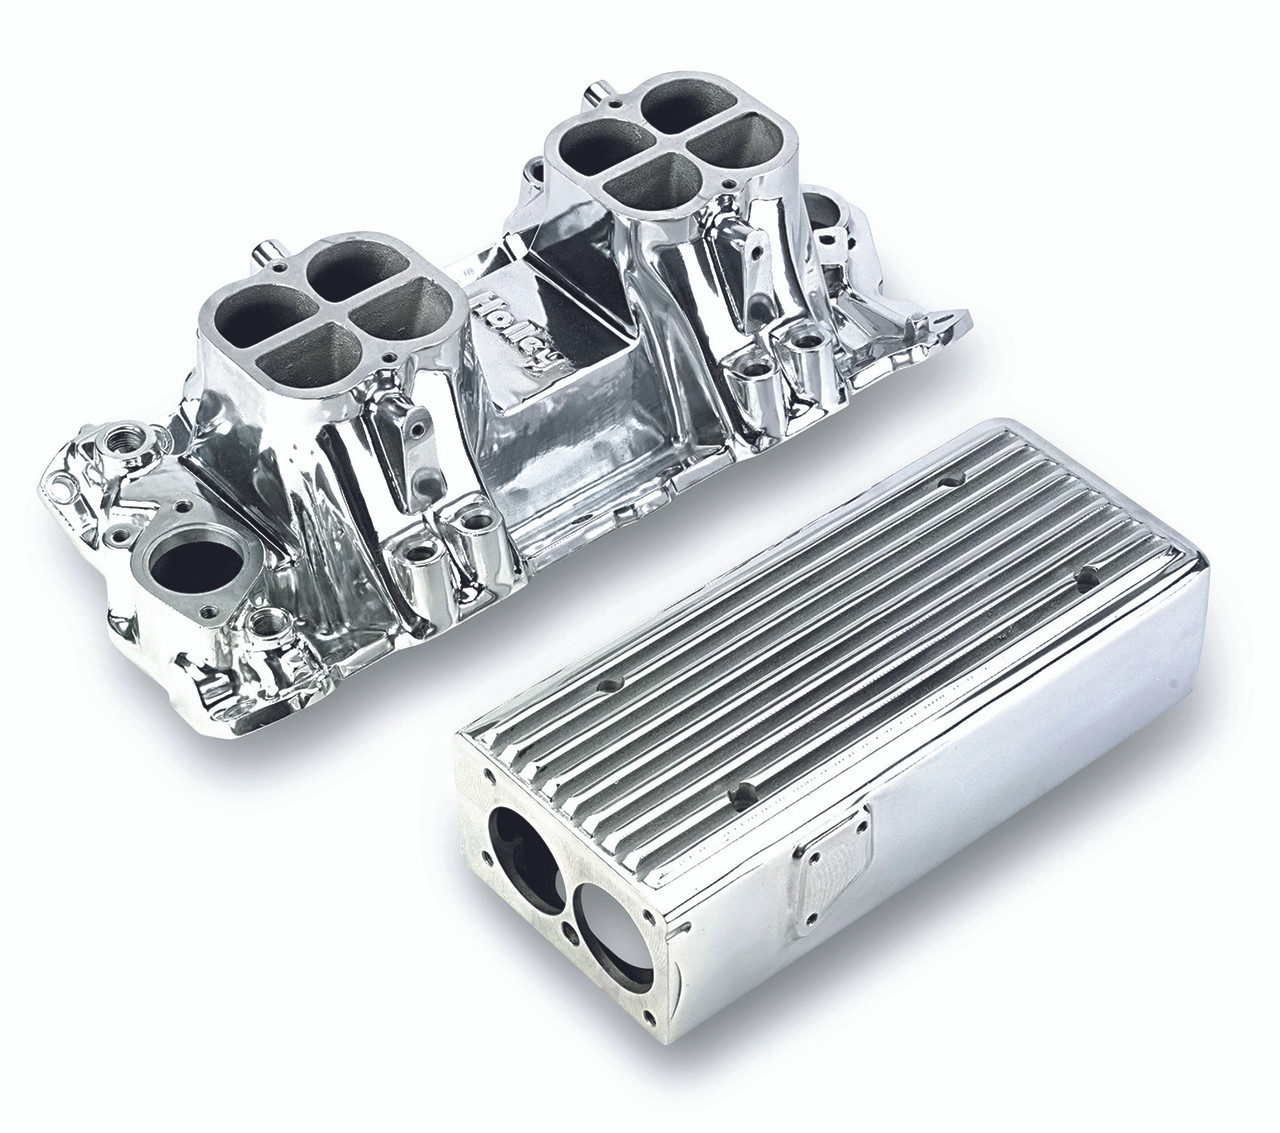 Weiand Stealth Ram Intake Manifold TPI, Polished, Stealth